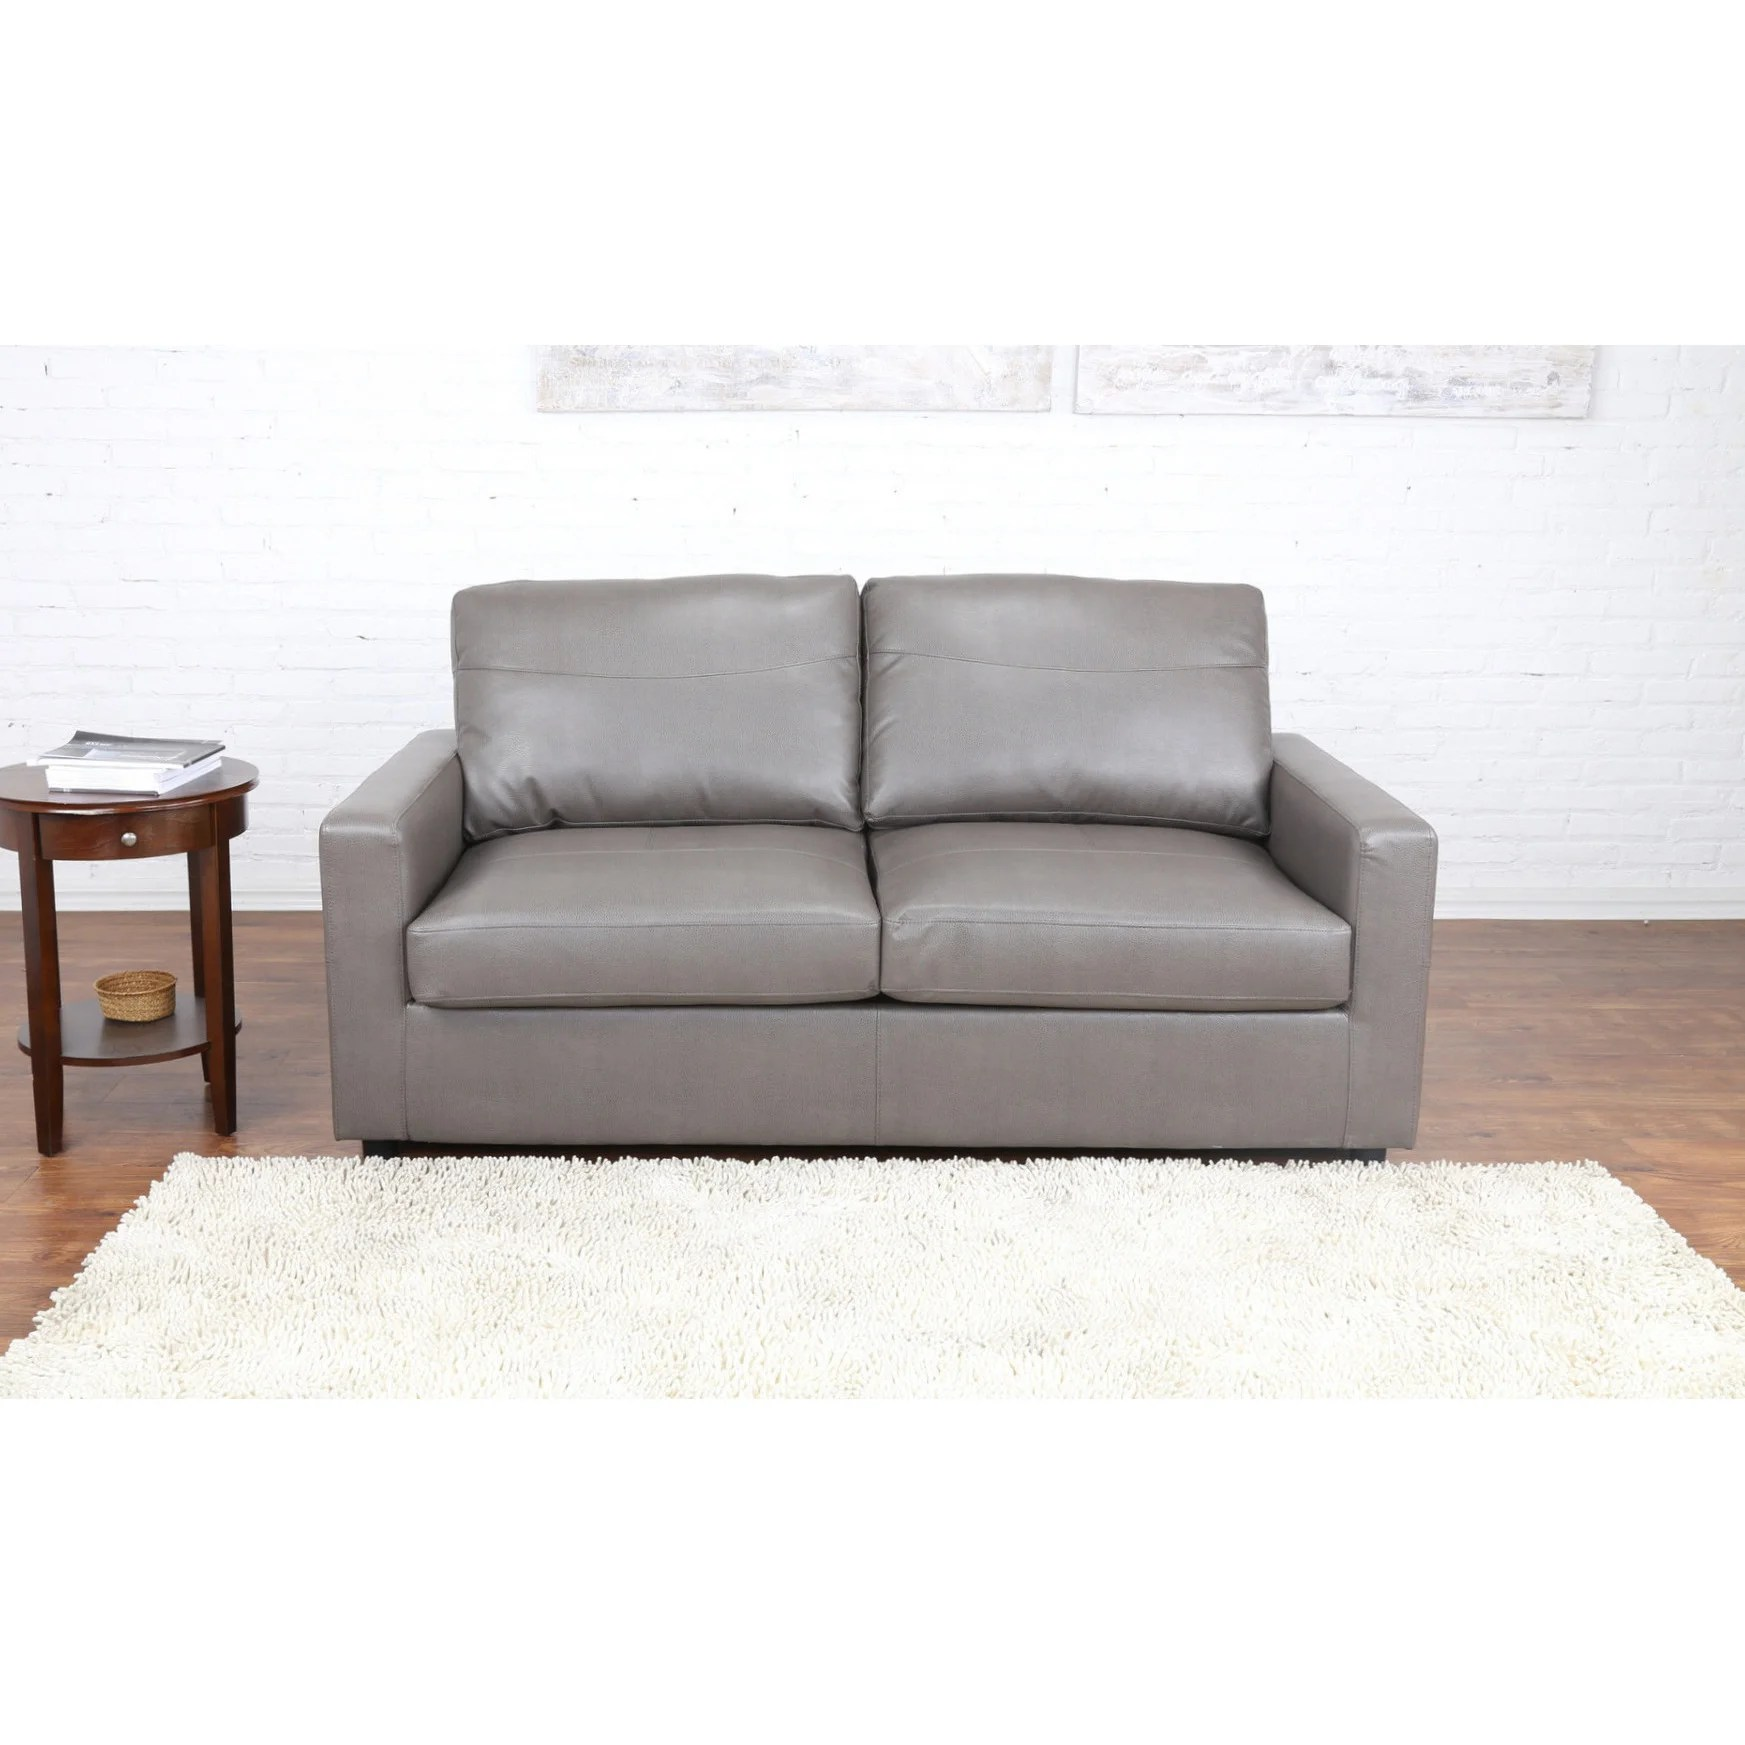 Sofa Bed Guest Room Ideas Bonded Leather Sleeper Pull Out Sofa And Bed